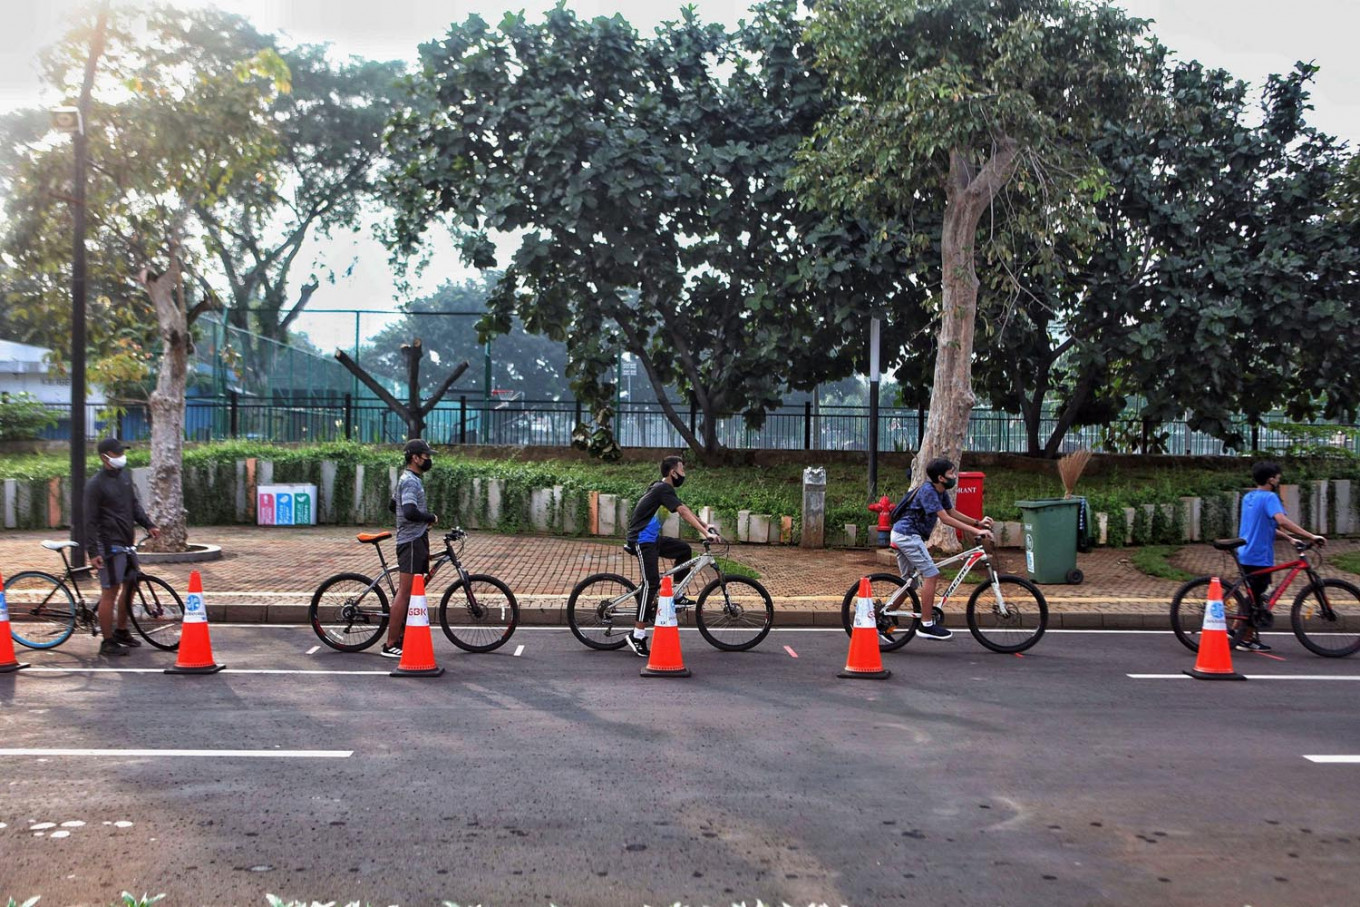 Jakartans turn to bicycles to commute in 'new normal'